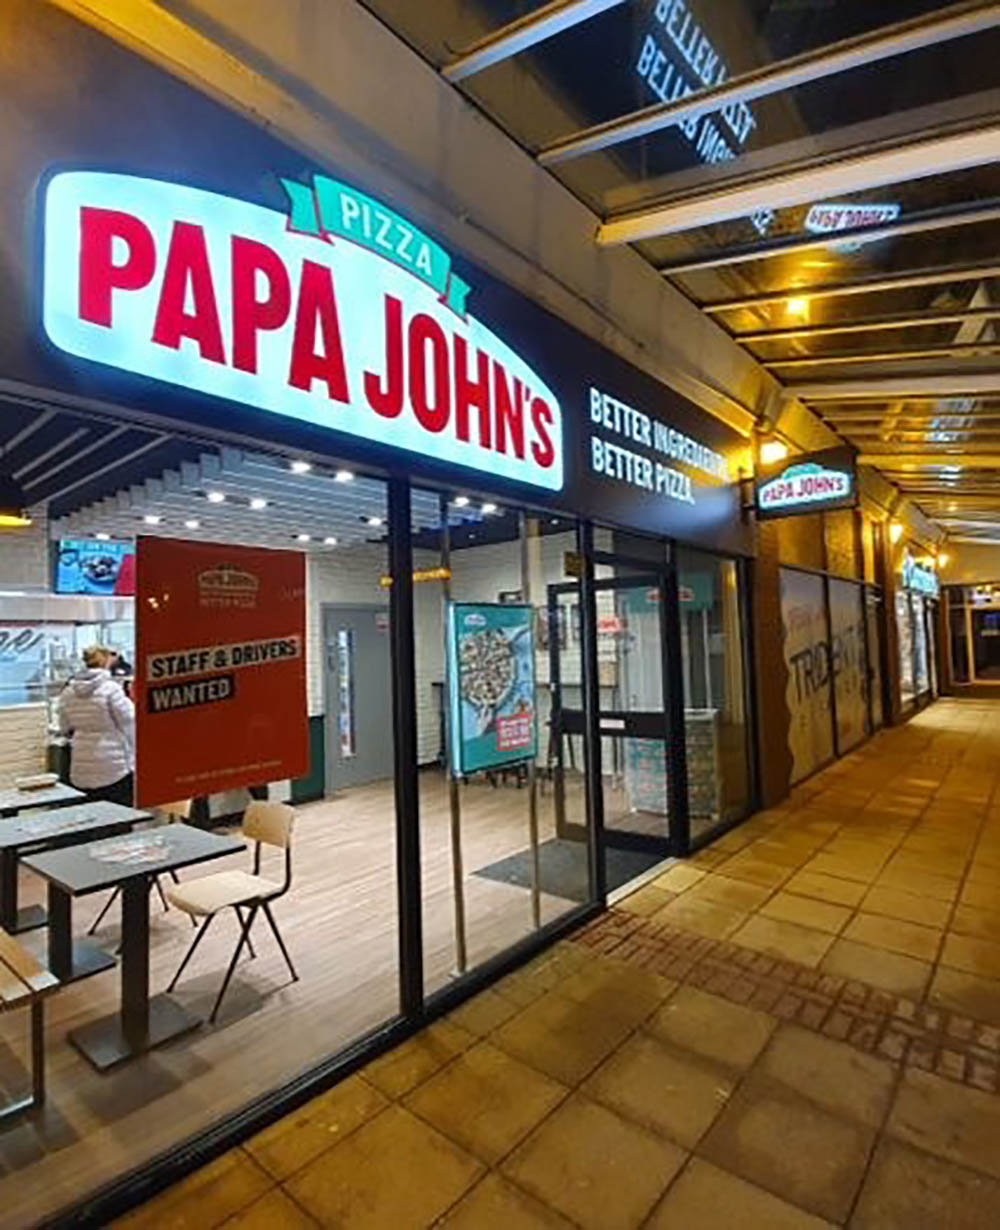 The Papa John's business model and the marketplace